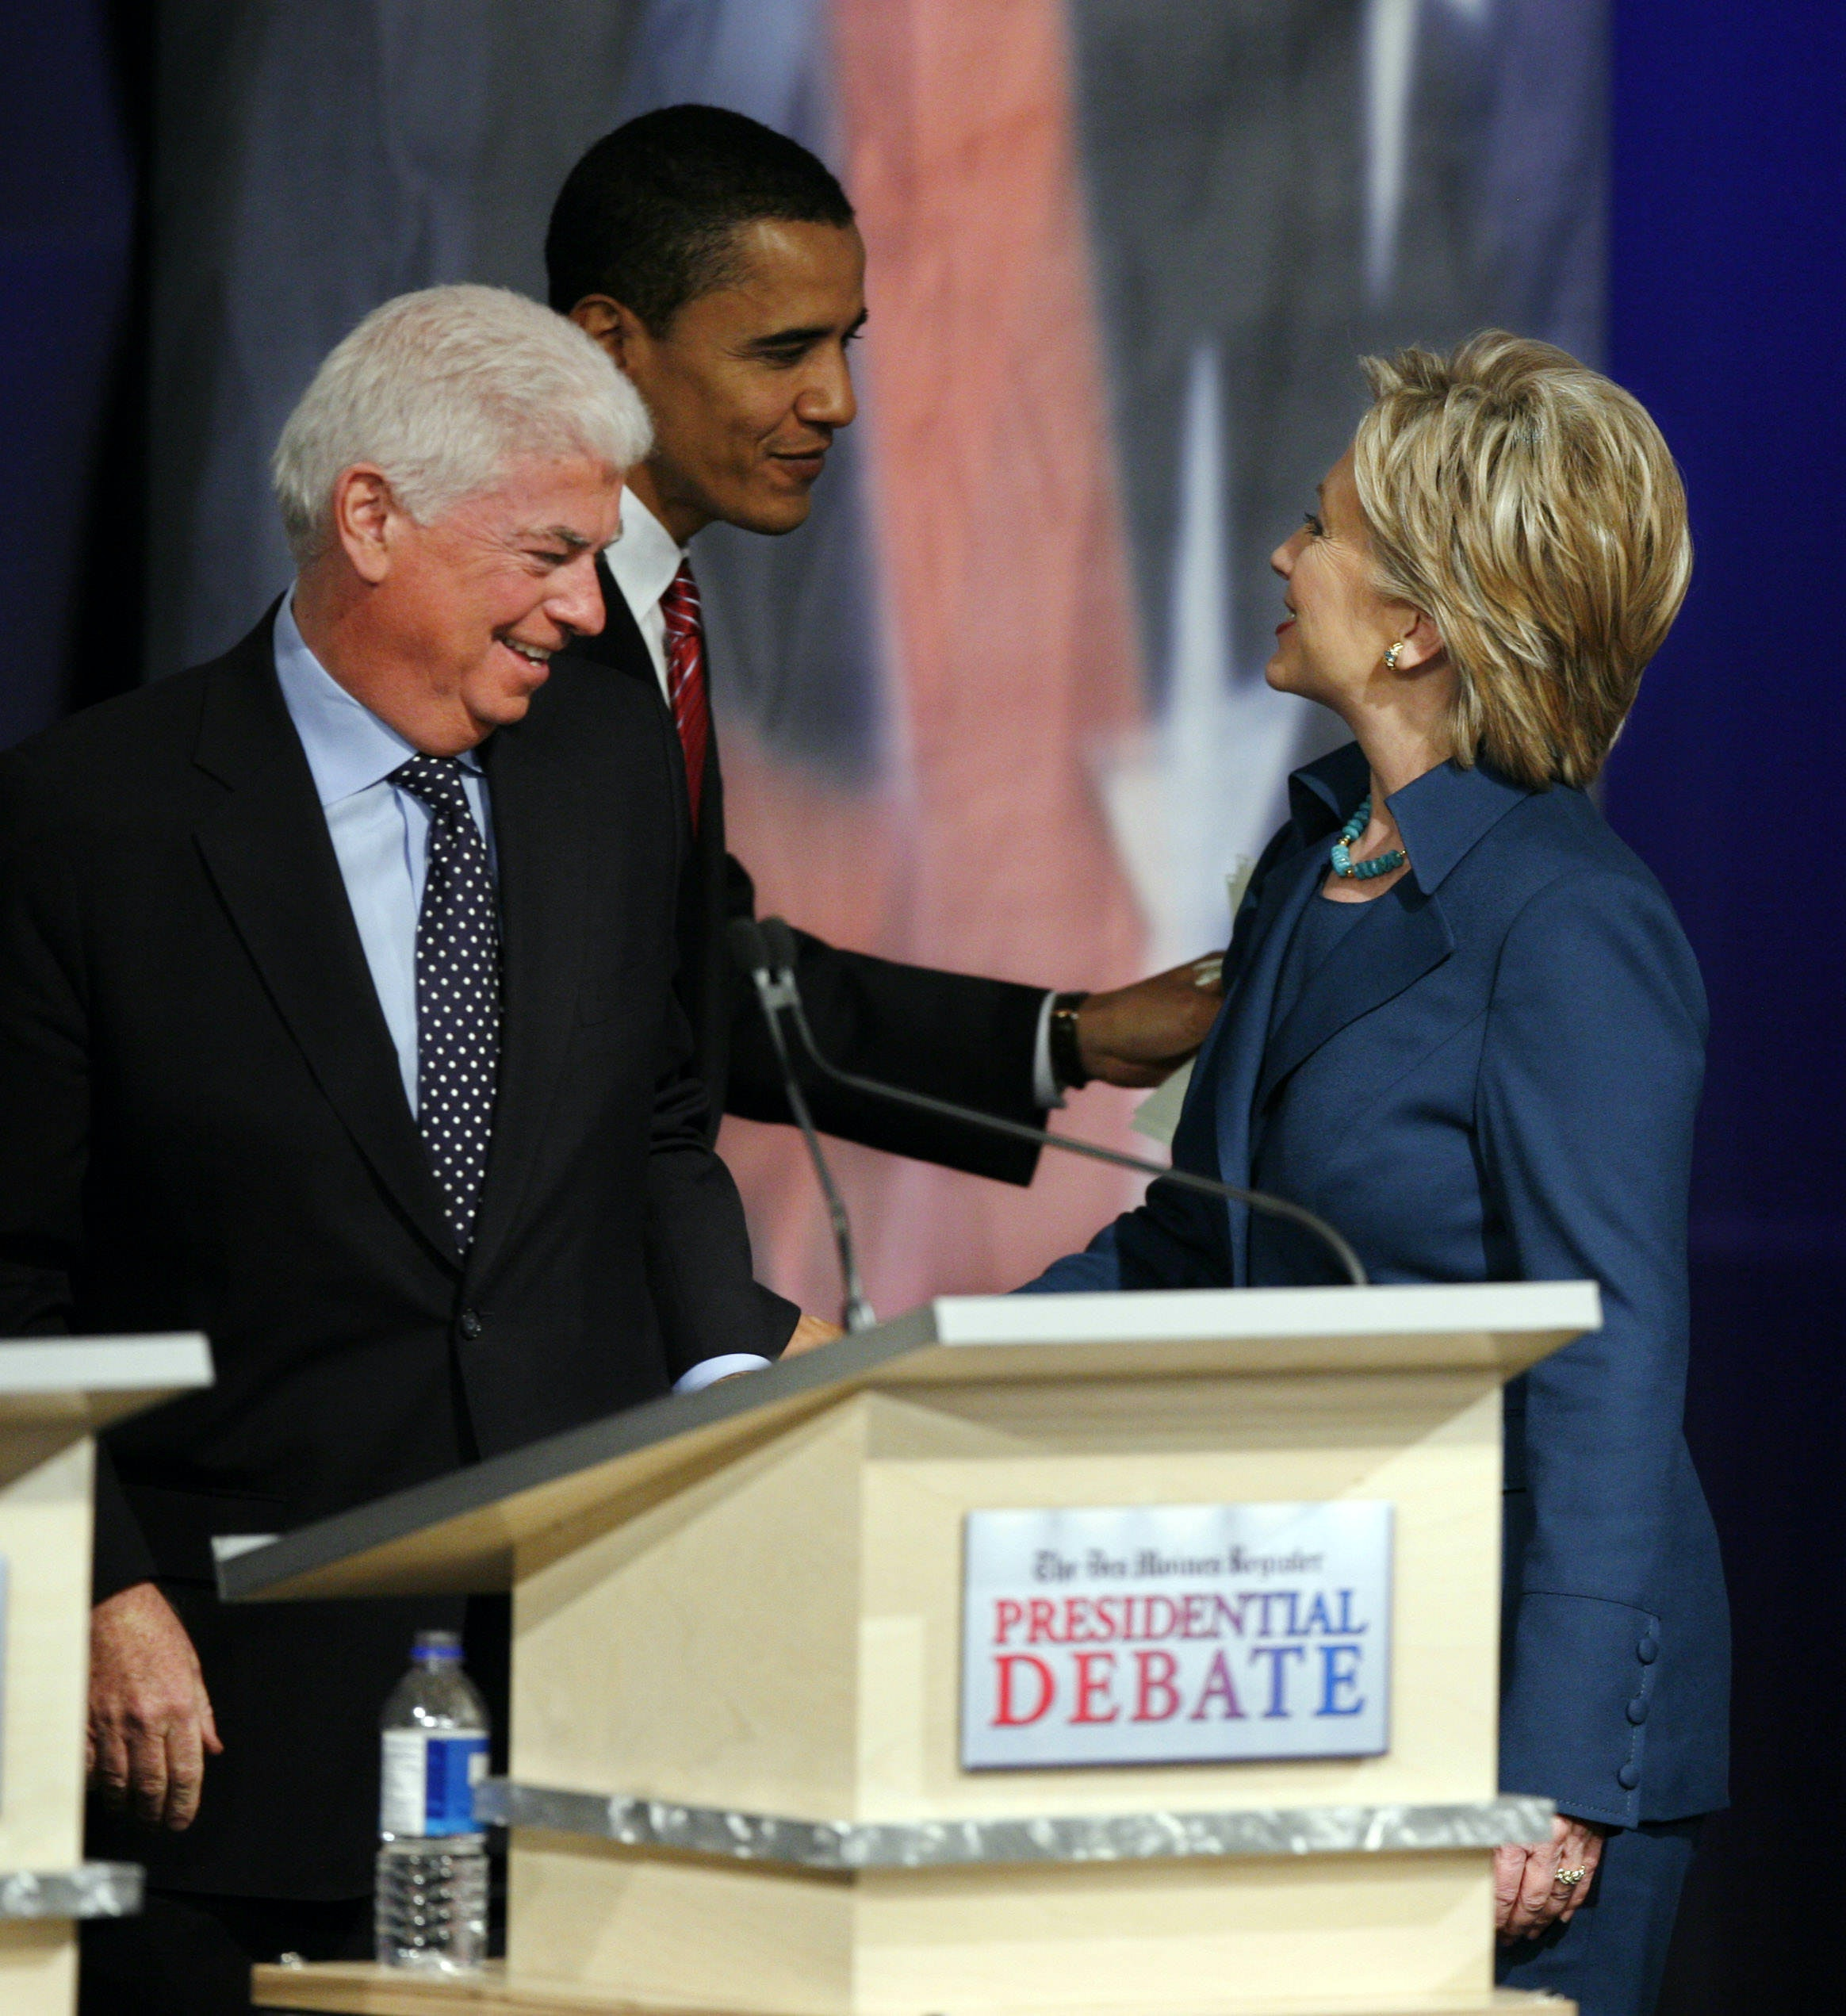 Hillary Clinton and Barack Obama at a Democratic presidential debate in Iowa in 2007. AP Photo/Charlie Neibergall